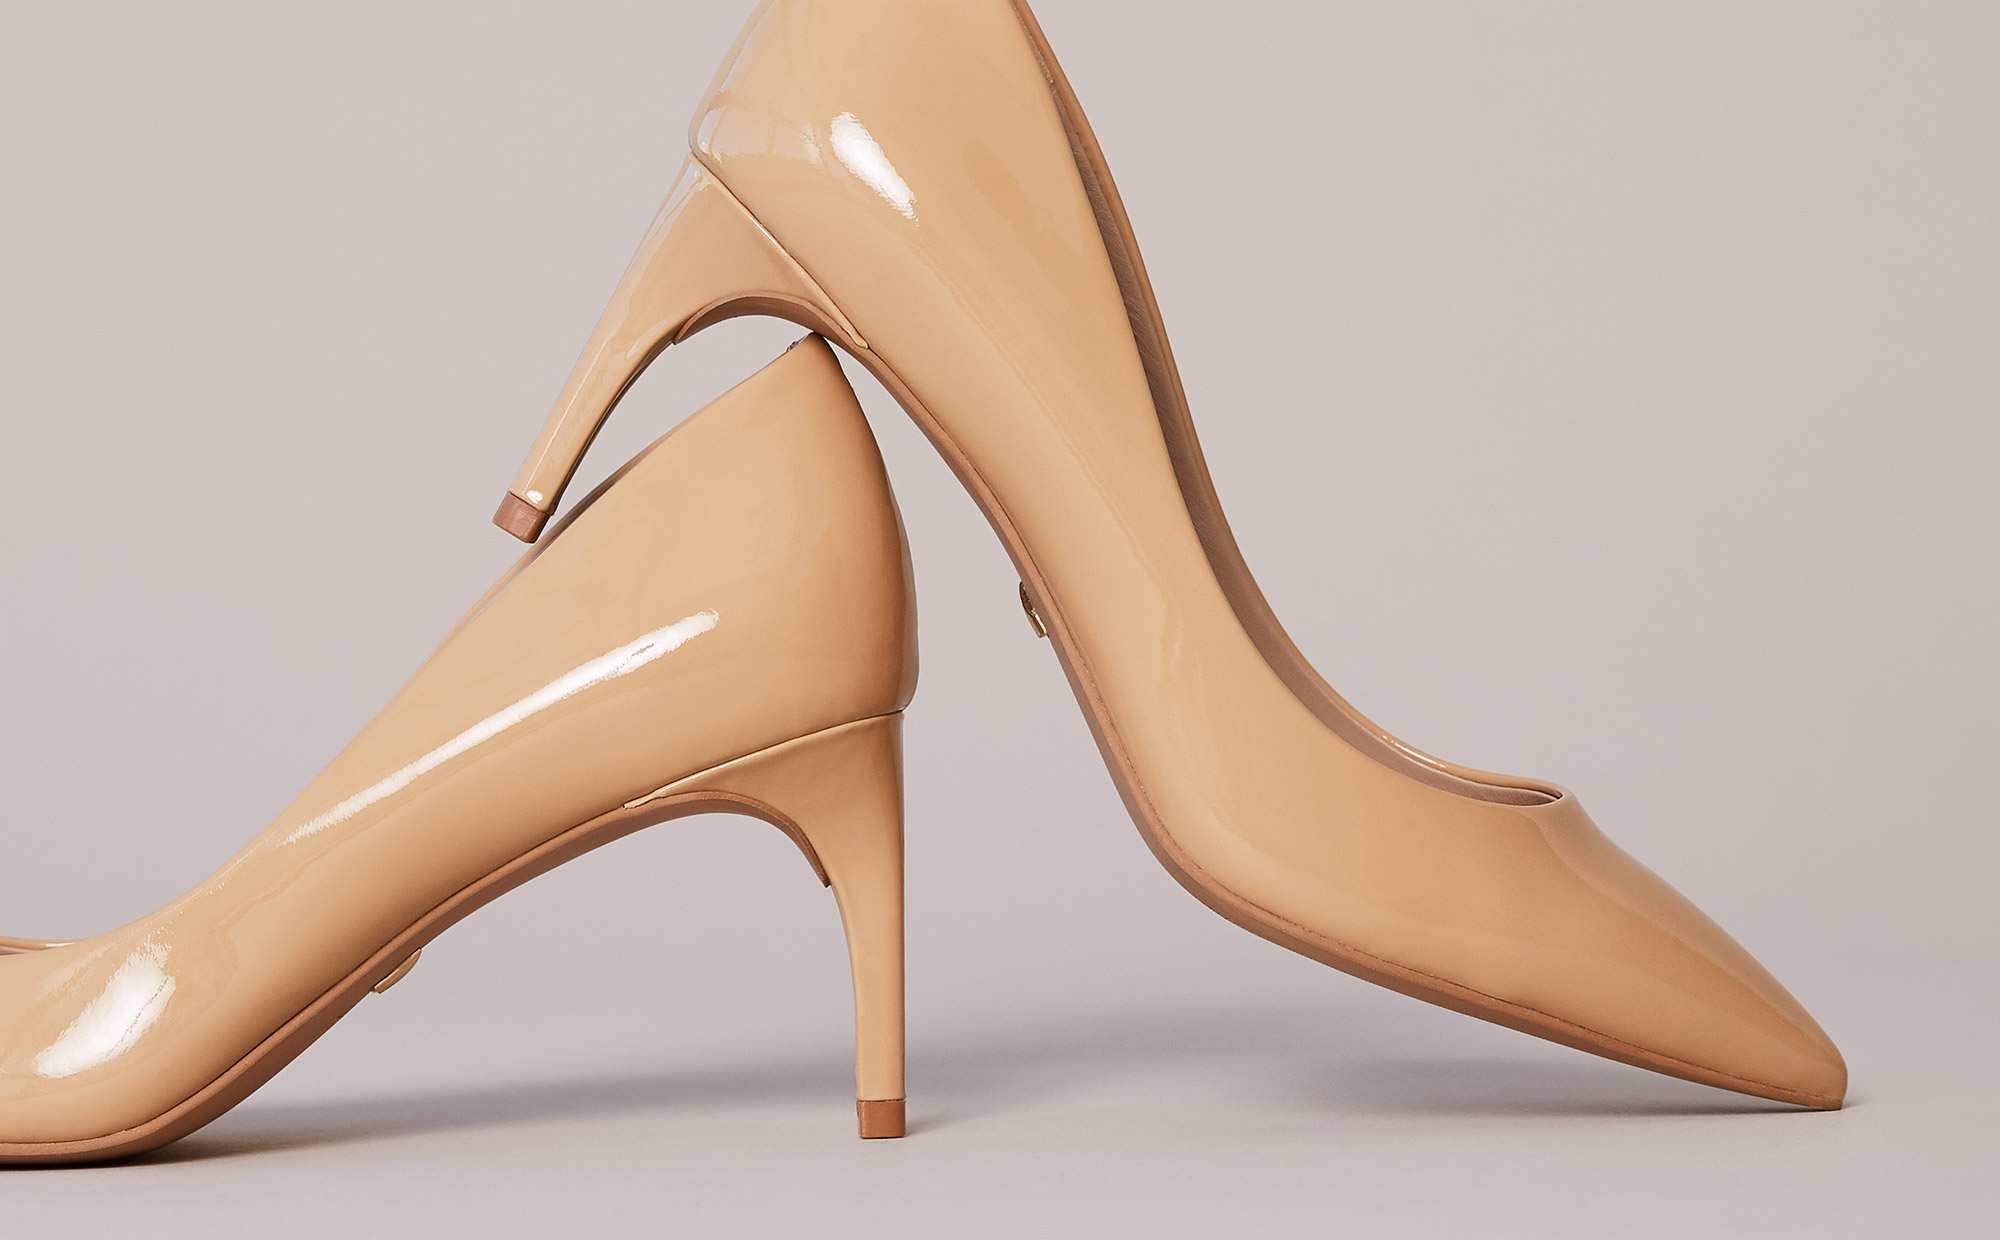 Nude patent leather pumps to wear to a business casual office